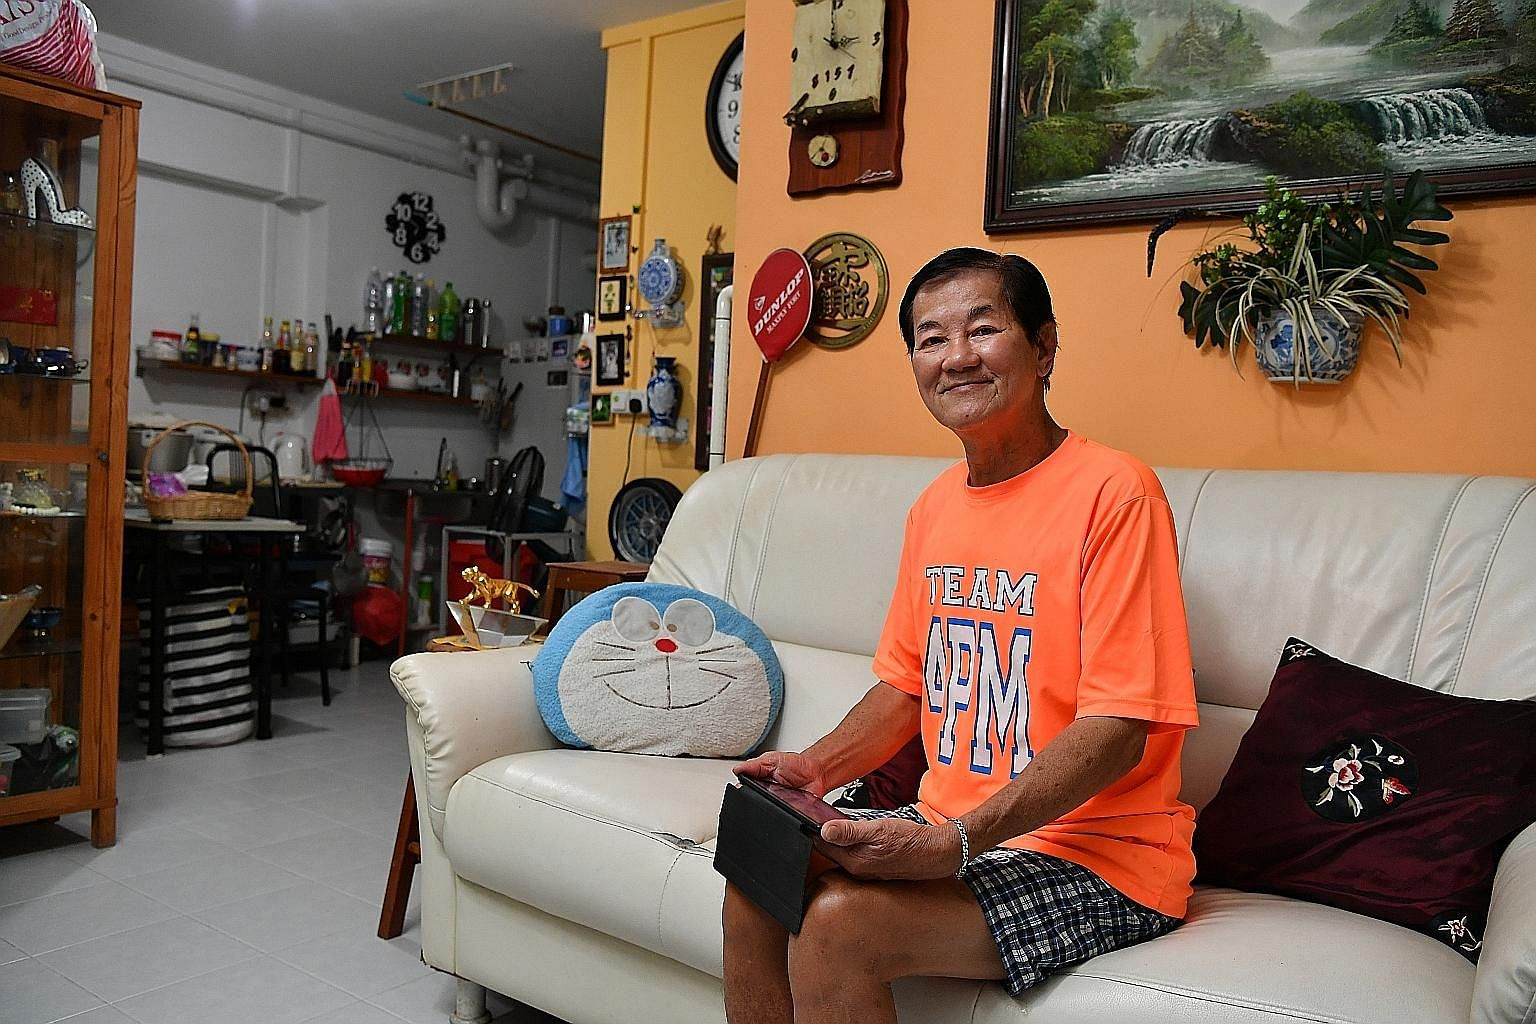 The ComCare Long-Term Assistance scheme gives Mr Henry Tan $500 every month, which he uses for his daily necessities and household bills. The scheme also pays for his medical bills. He also gets an additional $750 every three months under the Silver